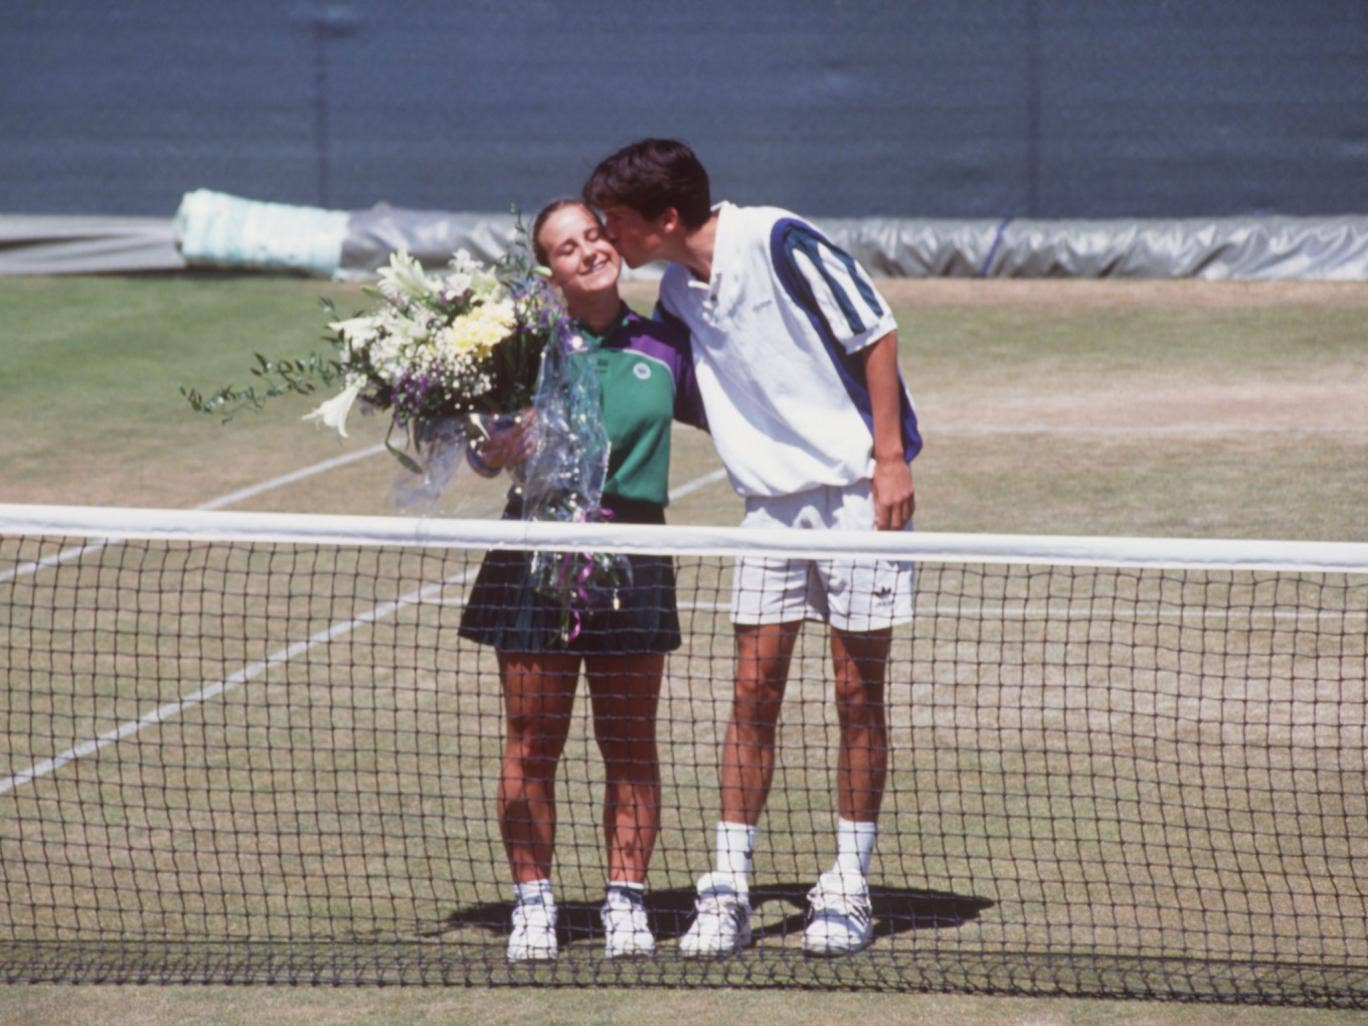 Tim Henman kissing ballgirl Caroline Hall on the cheek a day after he accidentally hit her during a doubles match with Jeremy Bates and was disqualified from the 1995 Wimbledon championships